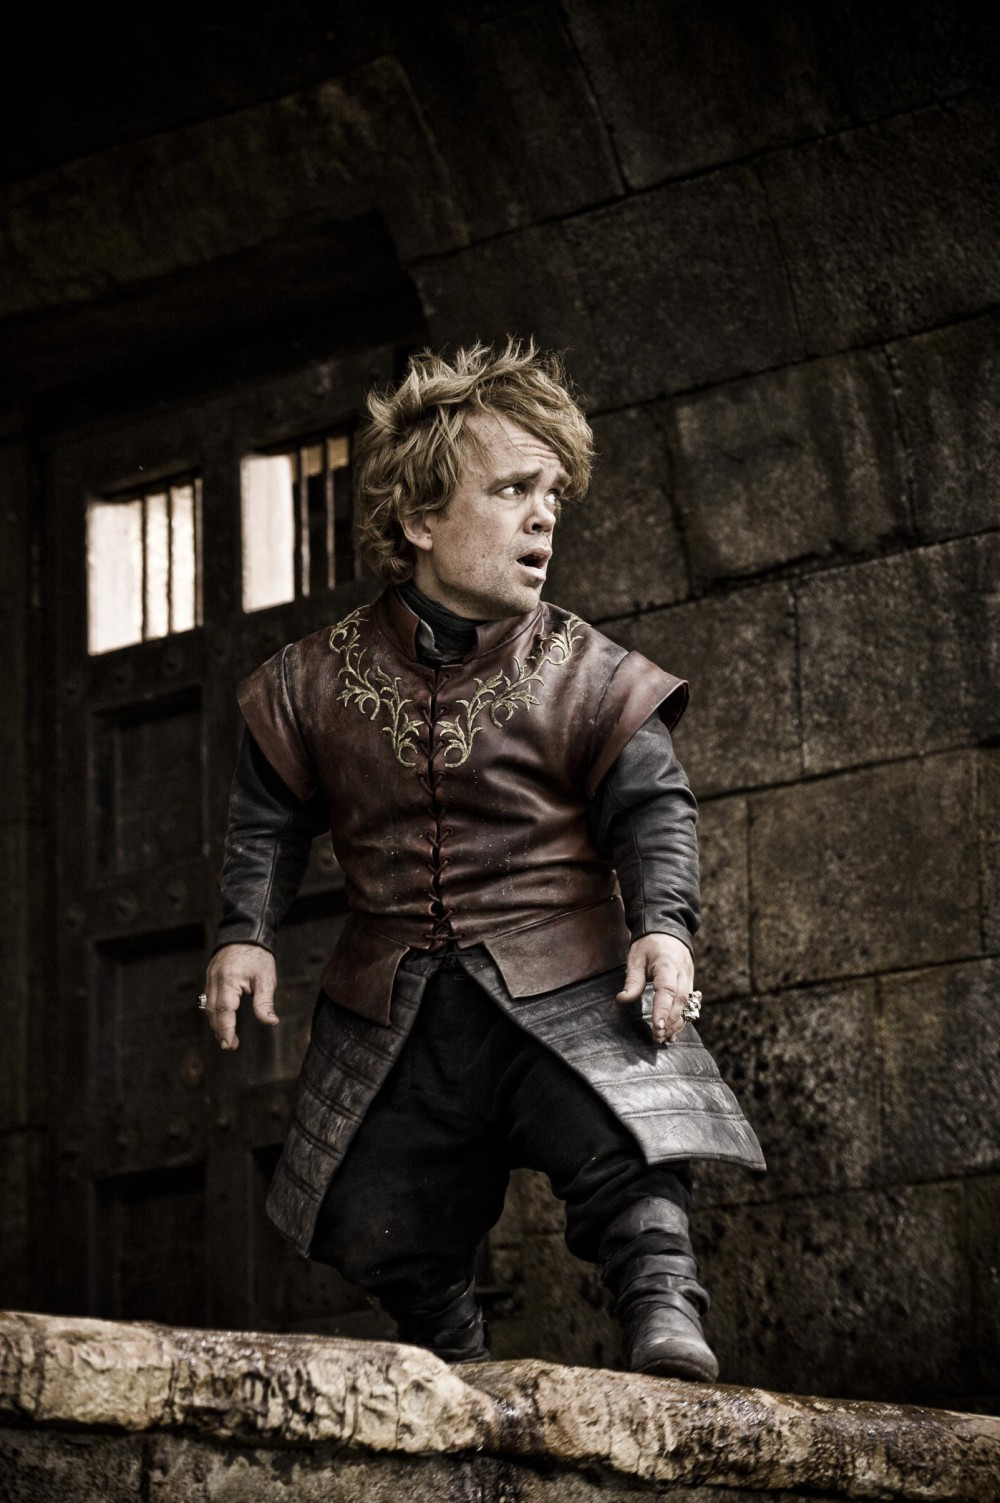 Peter Dinklage as Tyrion in the HBO adaptation.